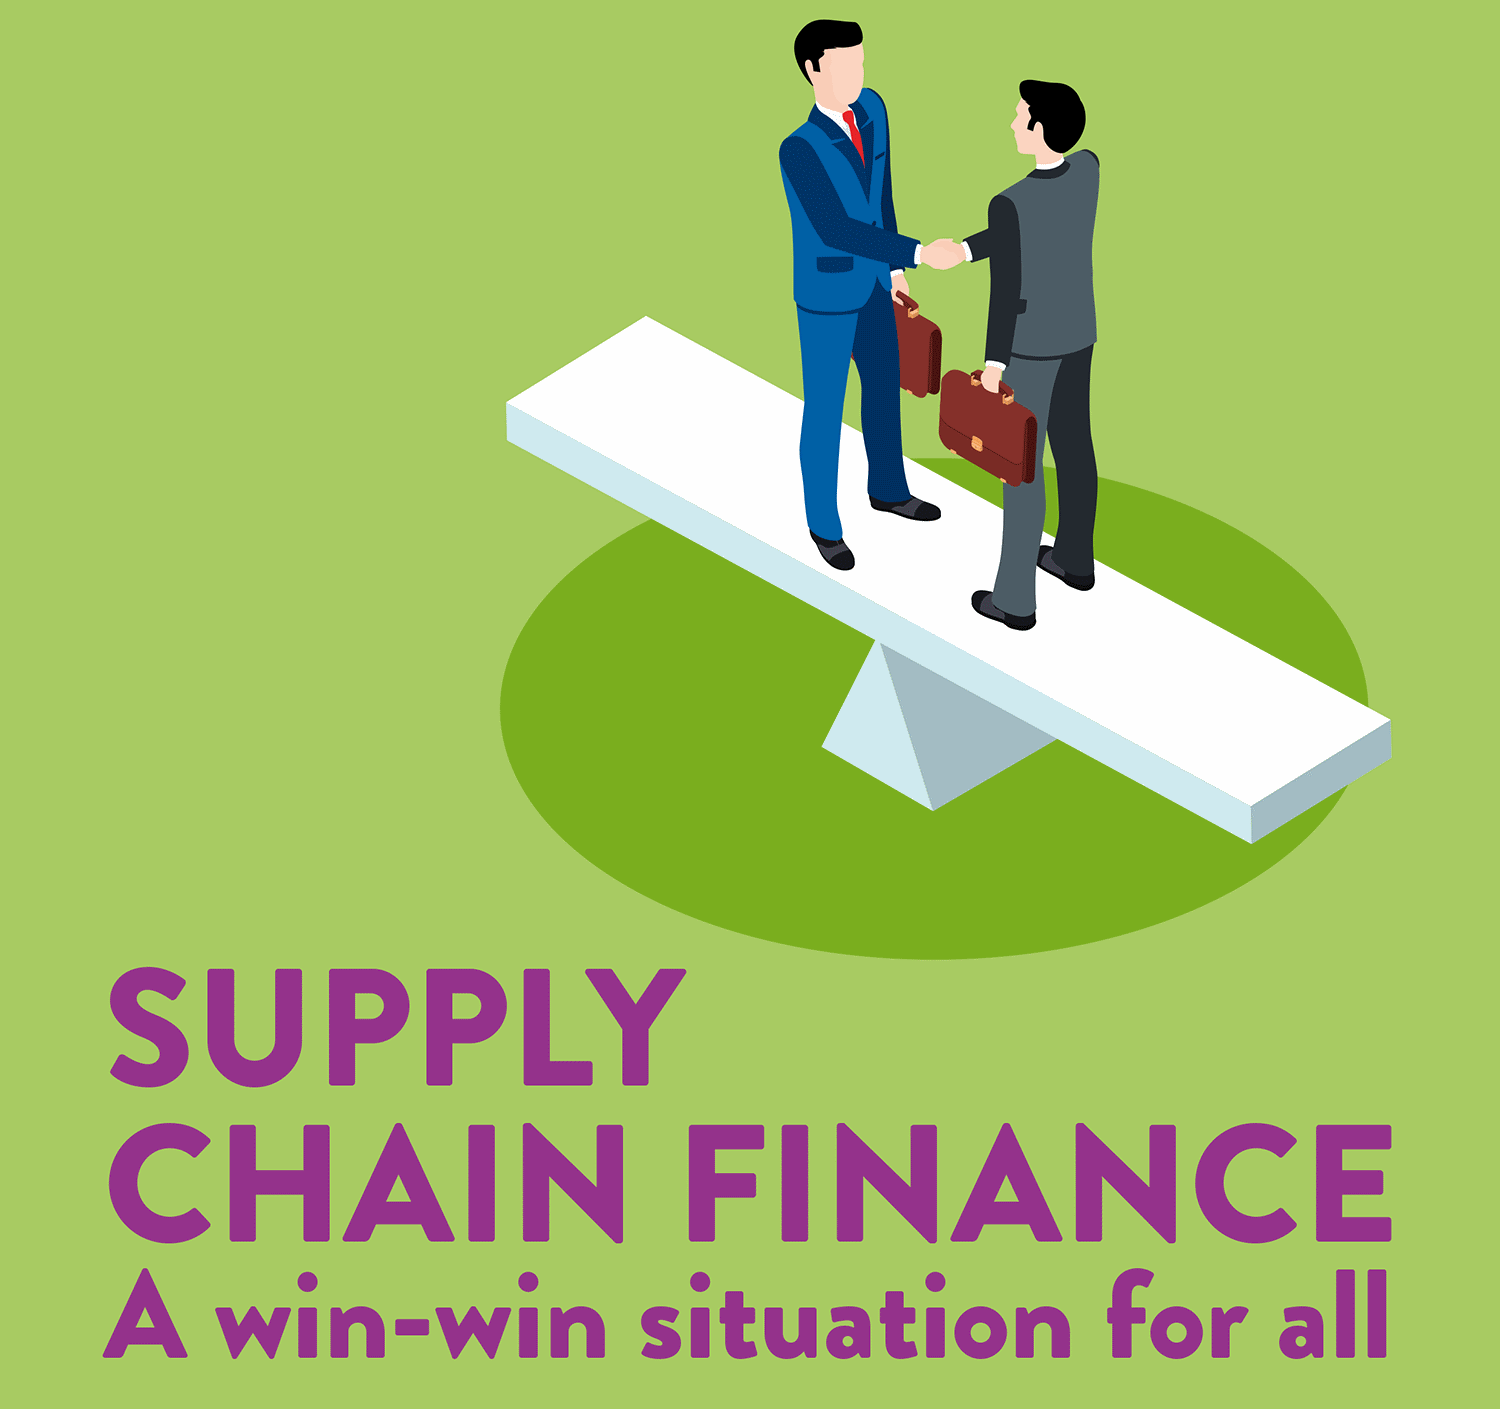 WIN-WIN-WIN - Everyone is a winner with supply chain finance 8